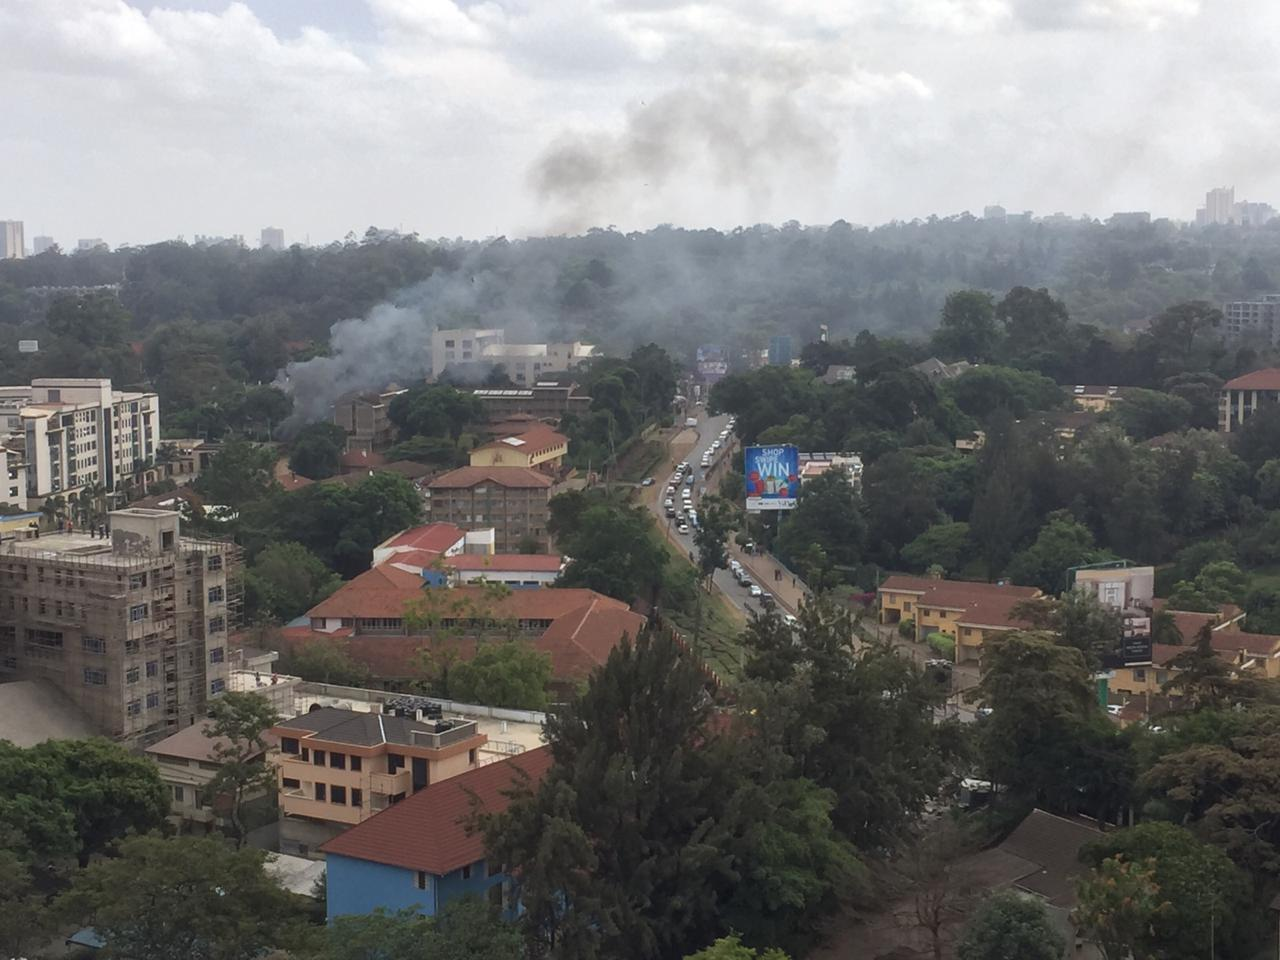 Smoke billowing from 14 Riverside after an explosion at the area. (PHOTO BY CITIZEN TV)